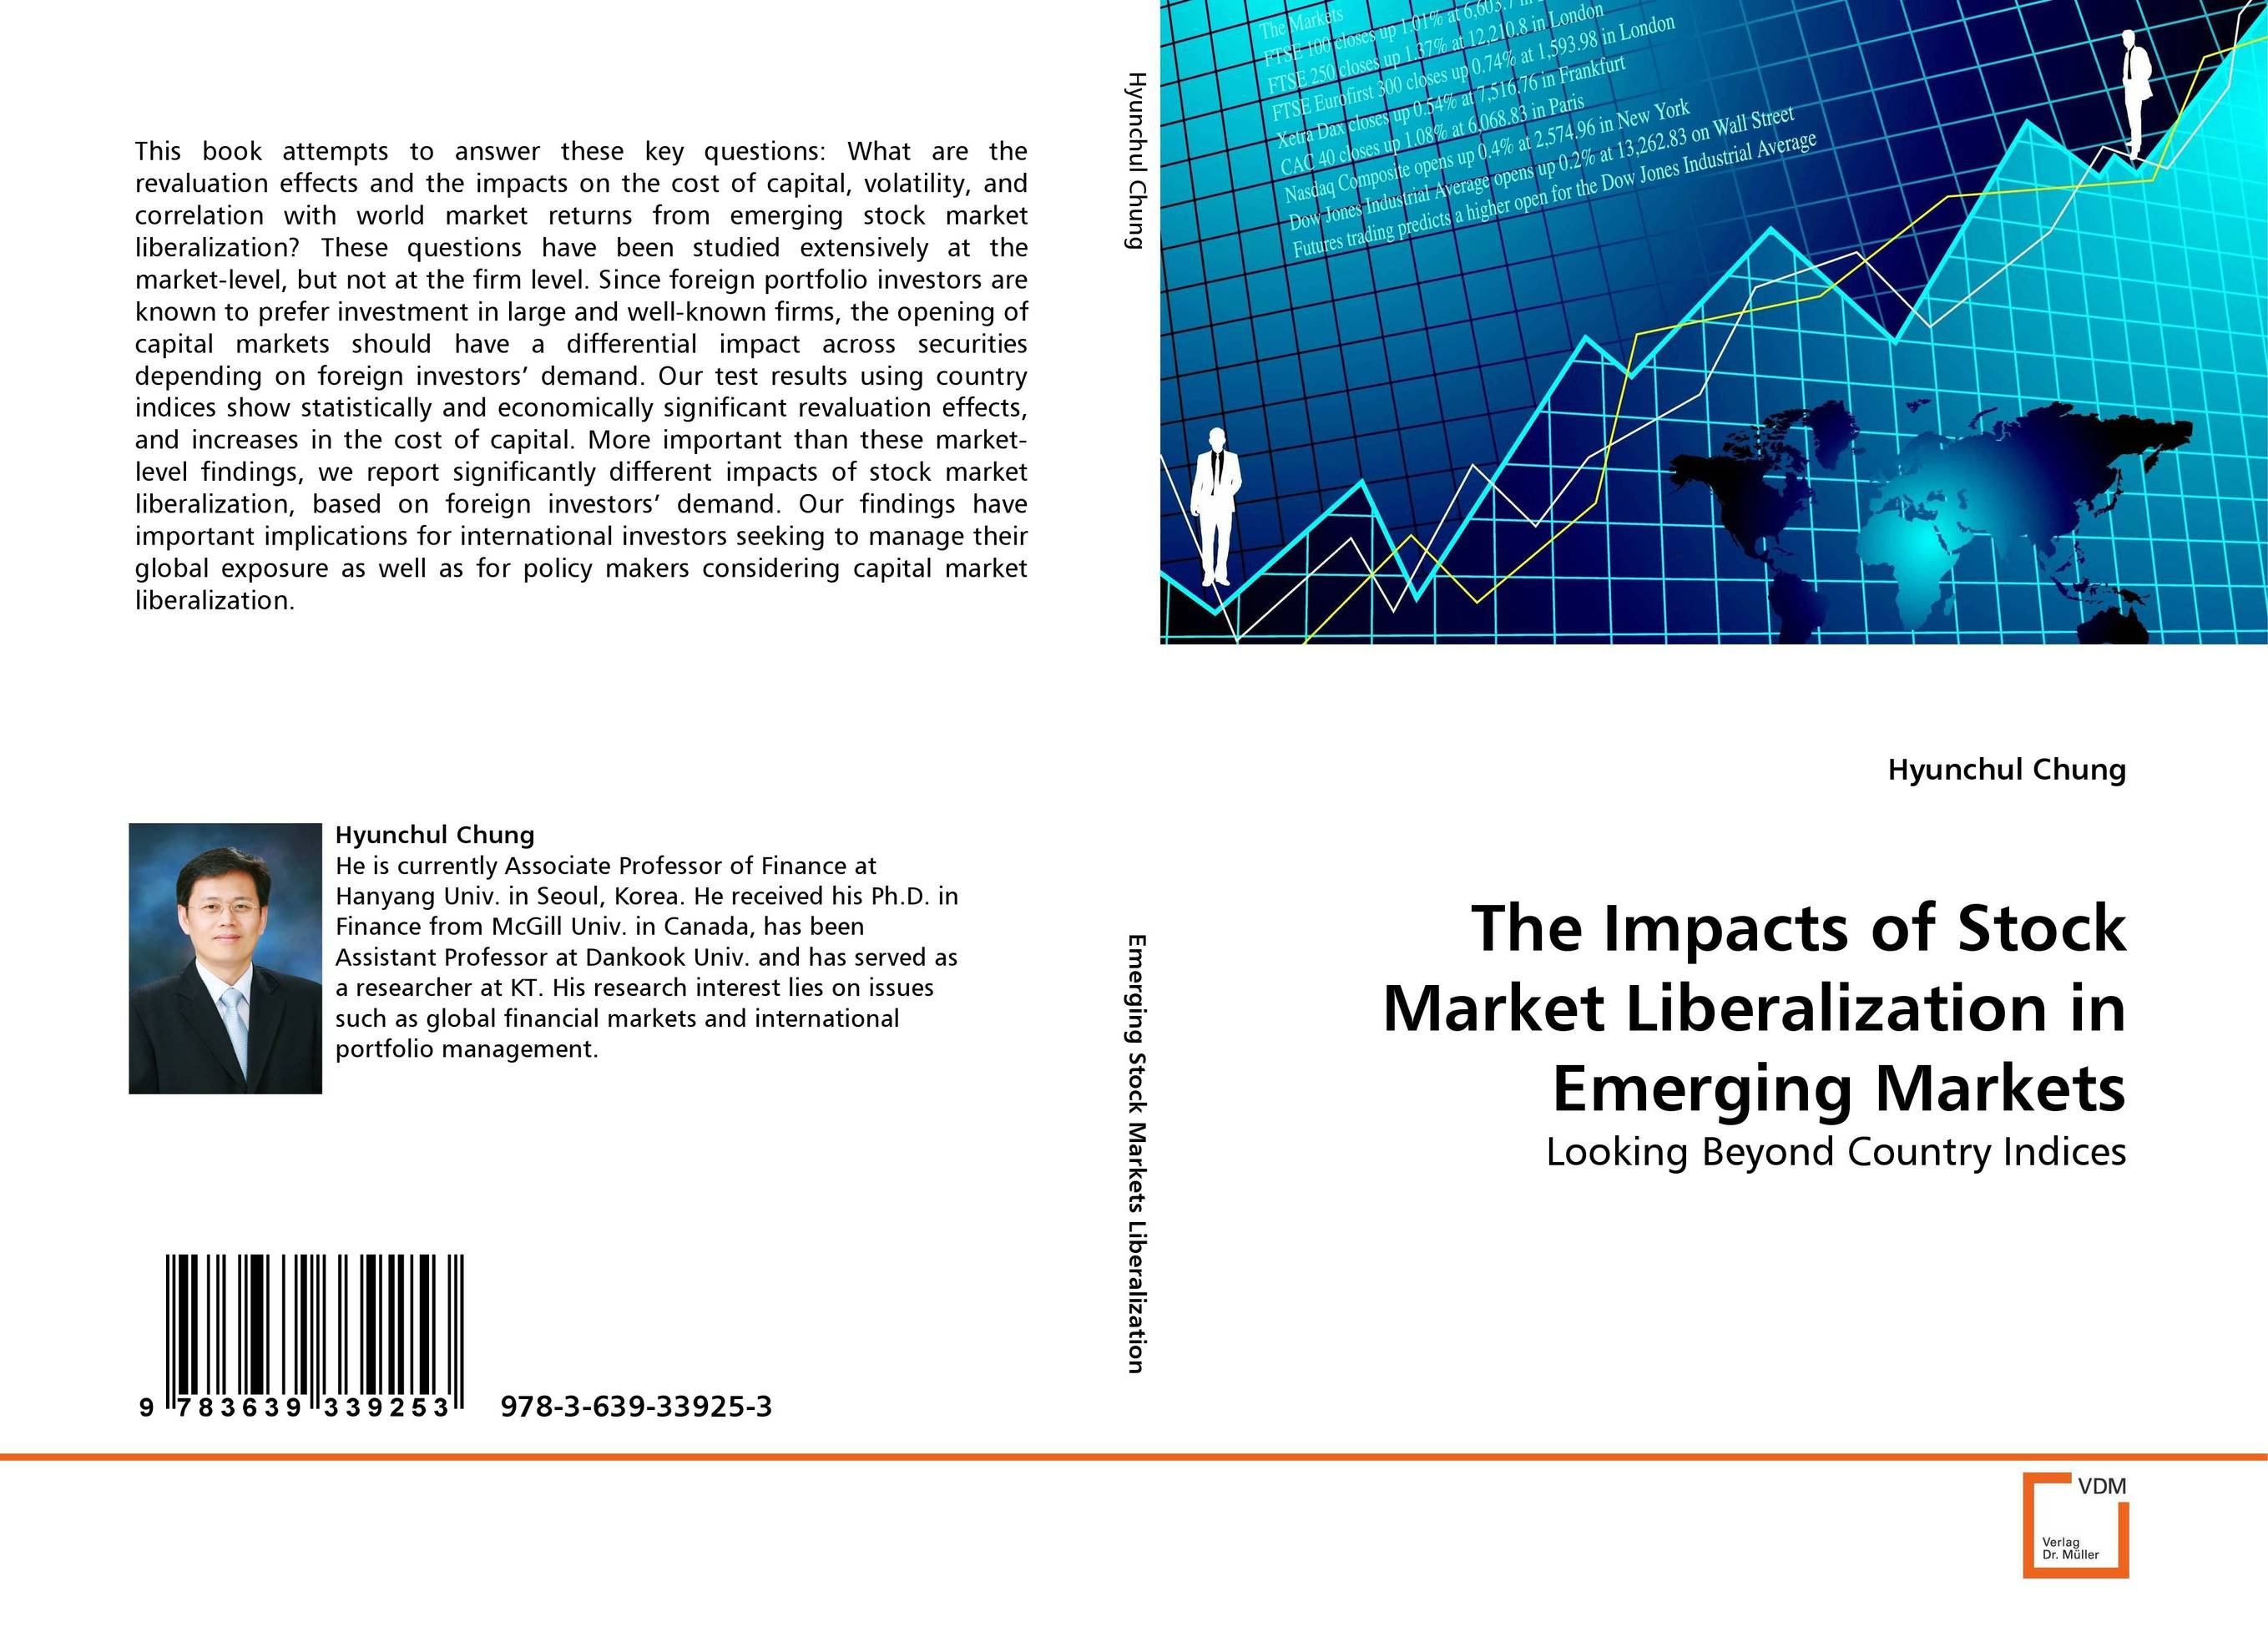 The Impacts of Stock Market Liberalization in Emerging Markets